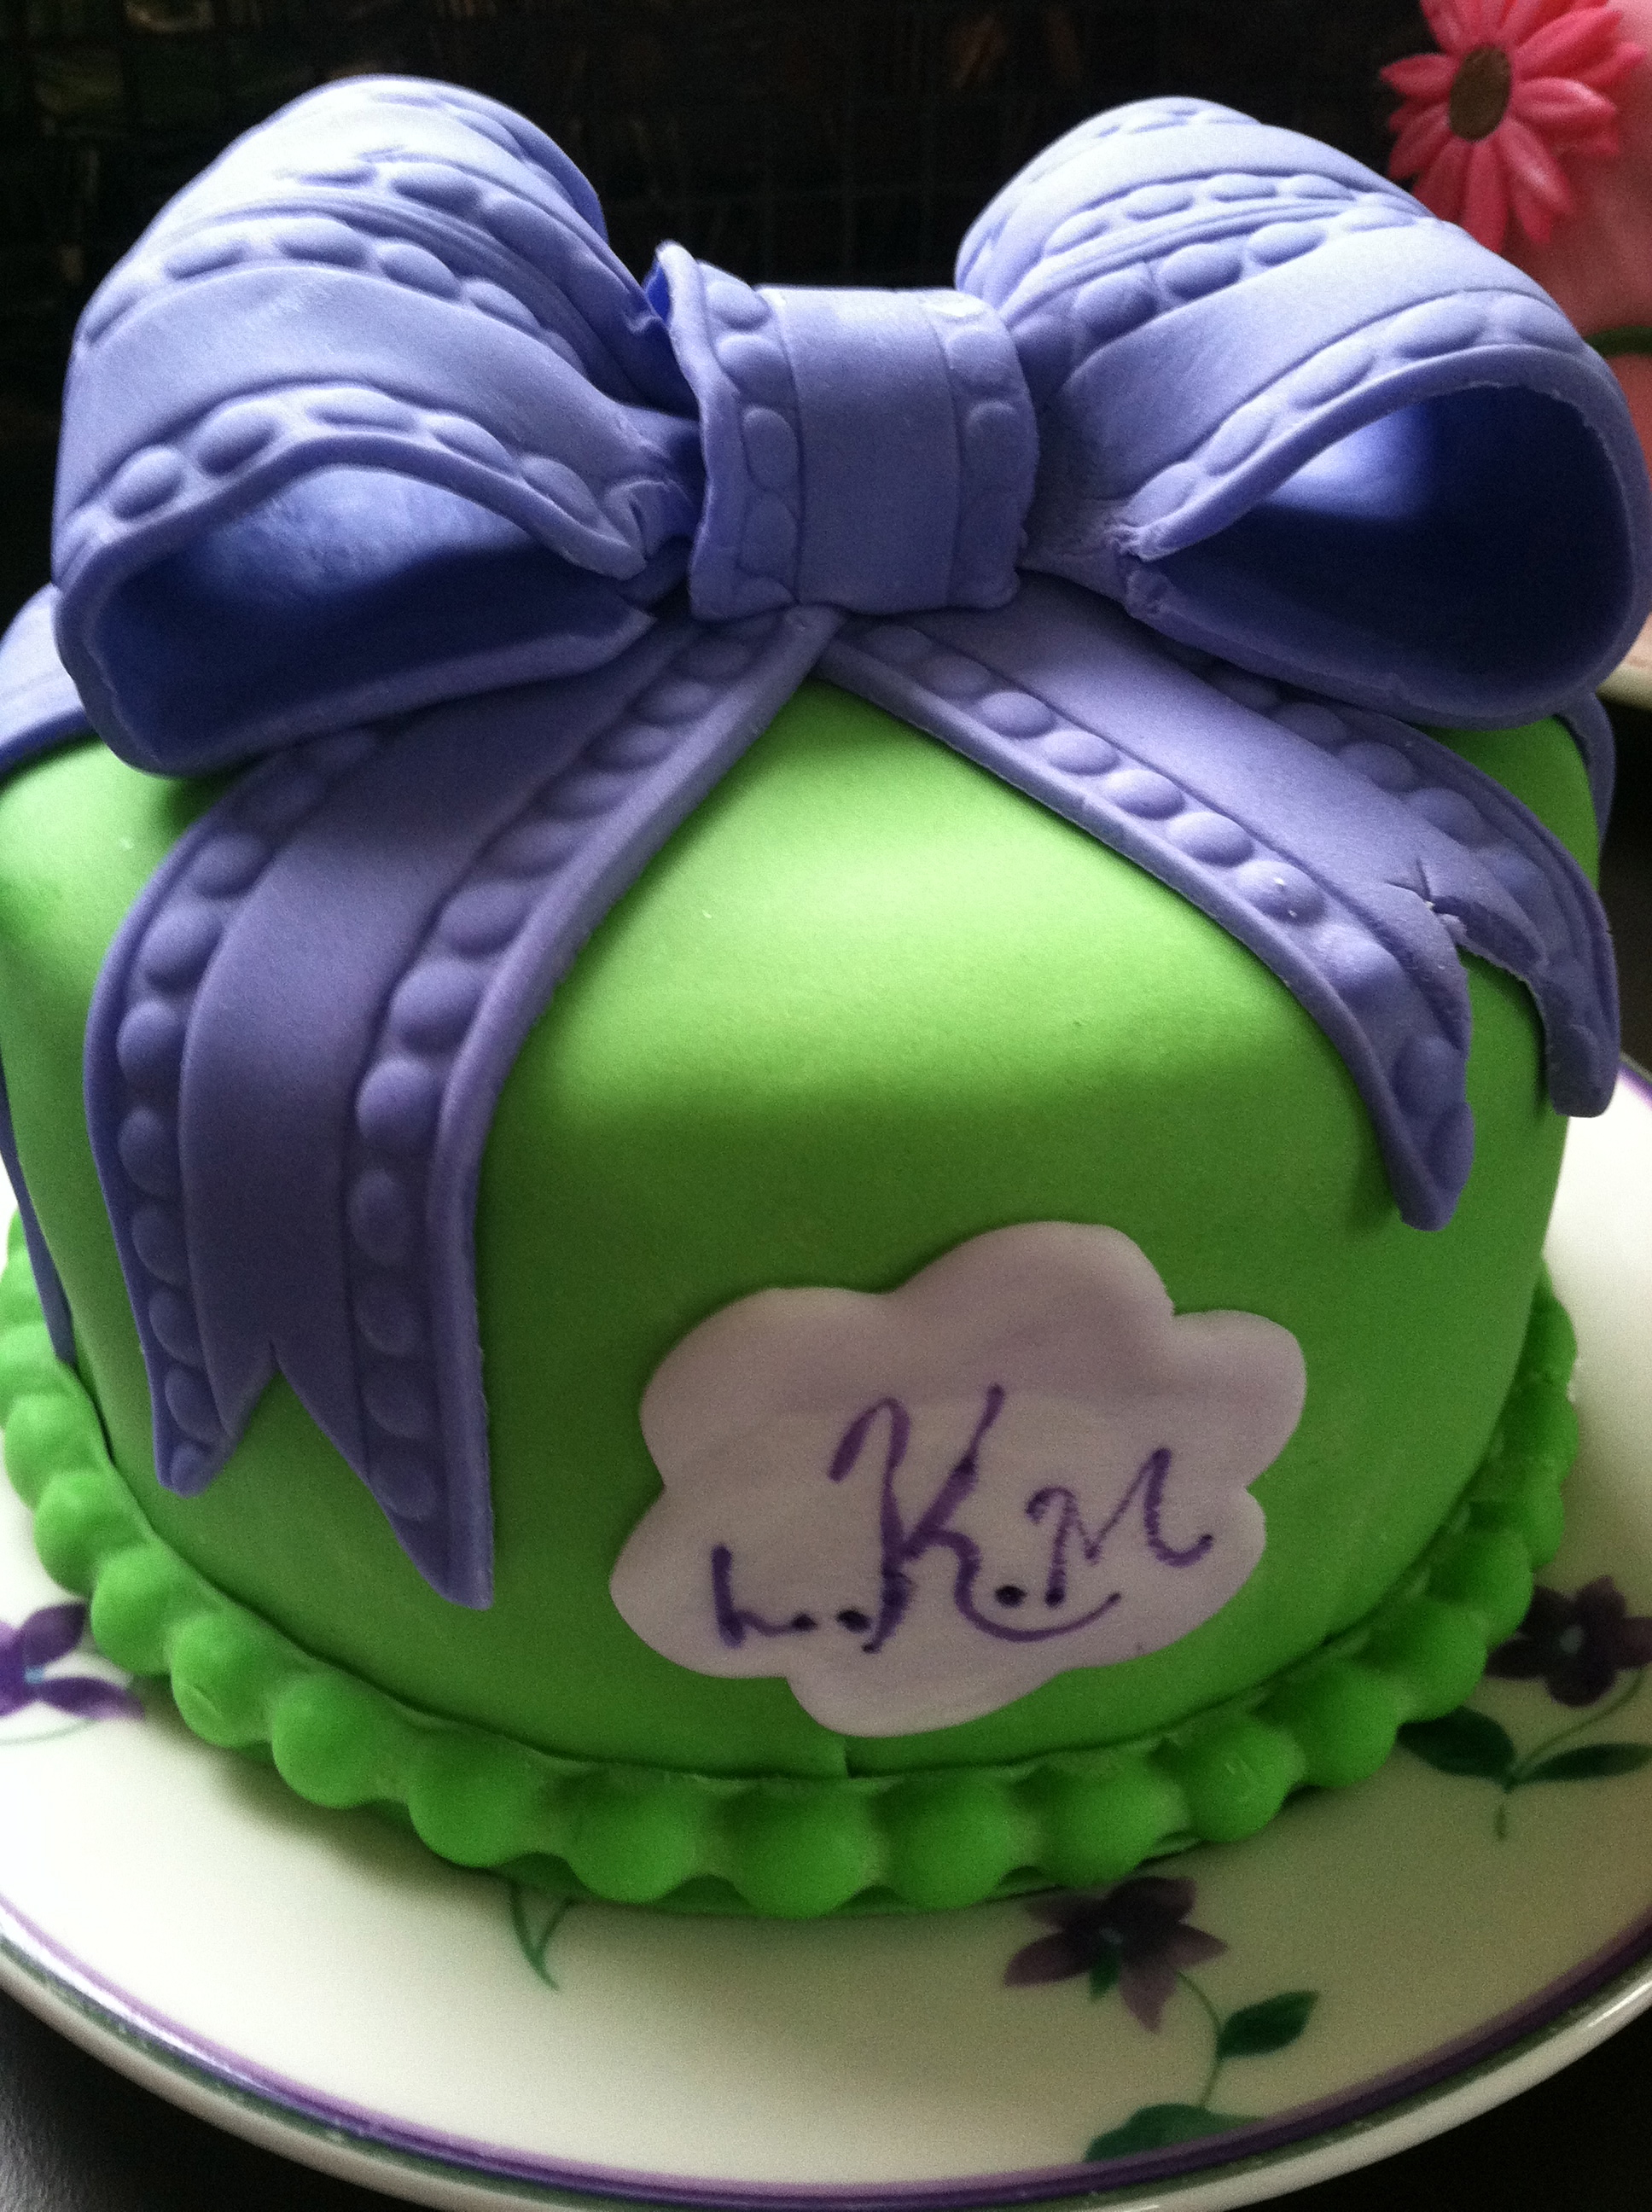 Green and Blue Fondant Cake